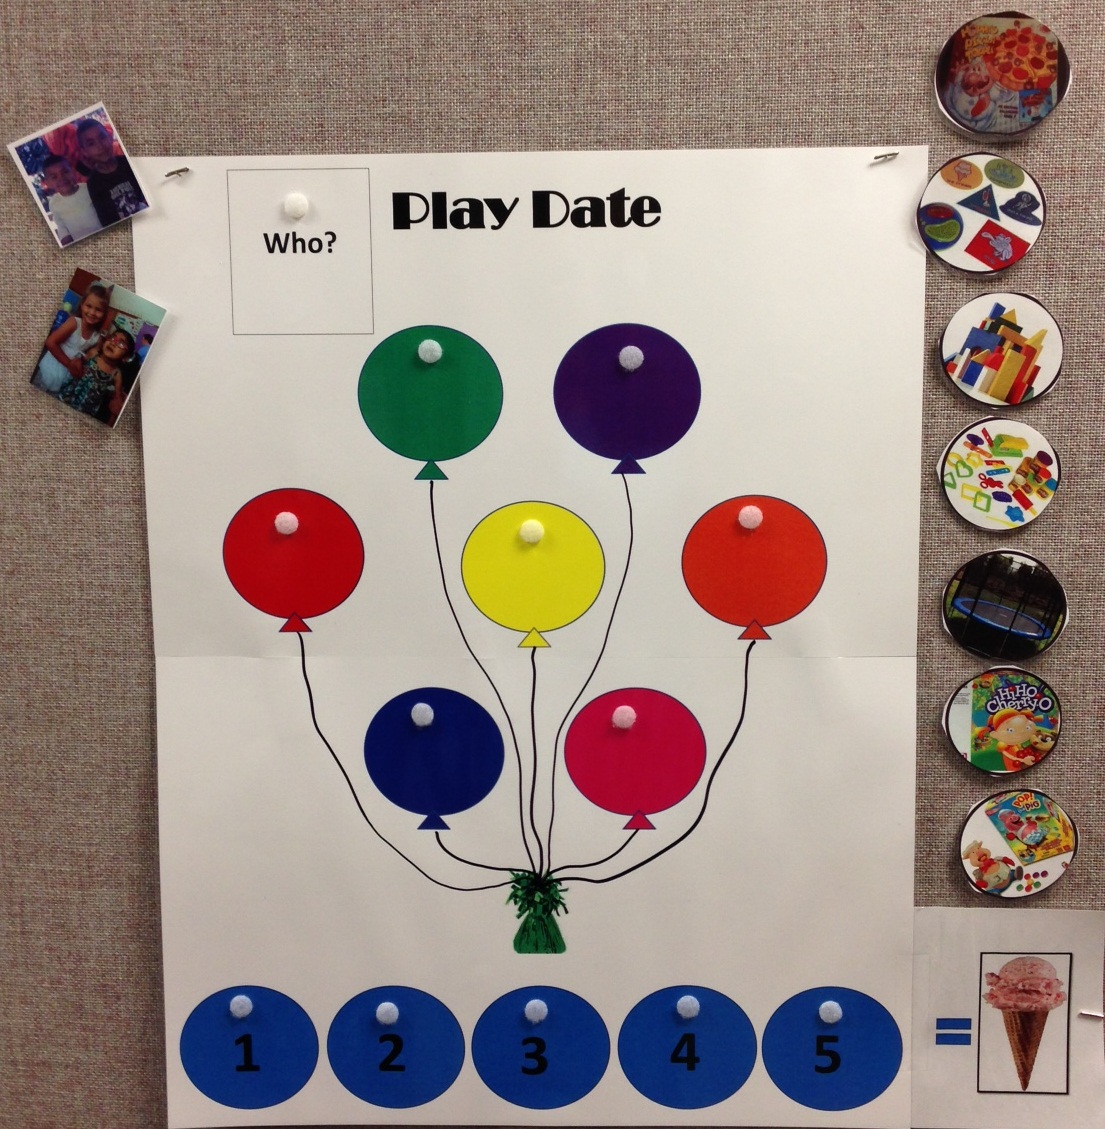 Play Date poster with balloons to hold pictures of activities that children on a play date can choose to do. Along the bottom are circles to place the activities in the order the children choose. On the left are pictures of the children who will be playing.